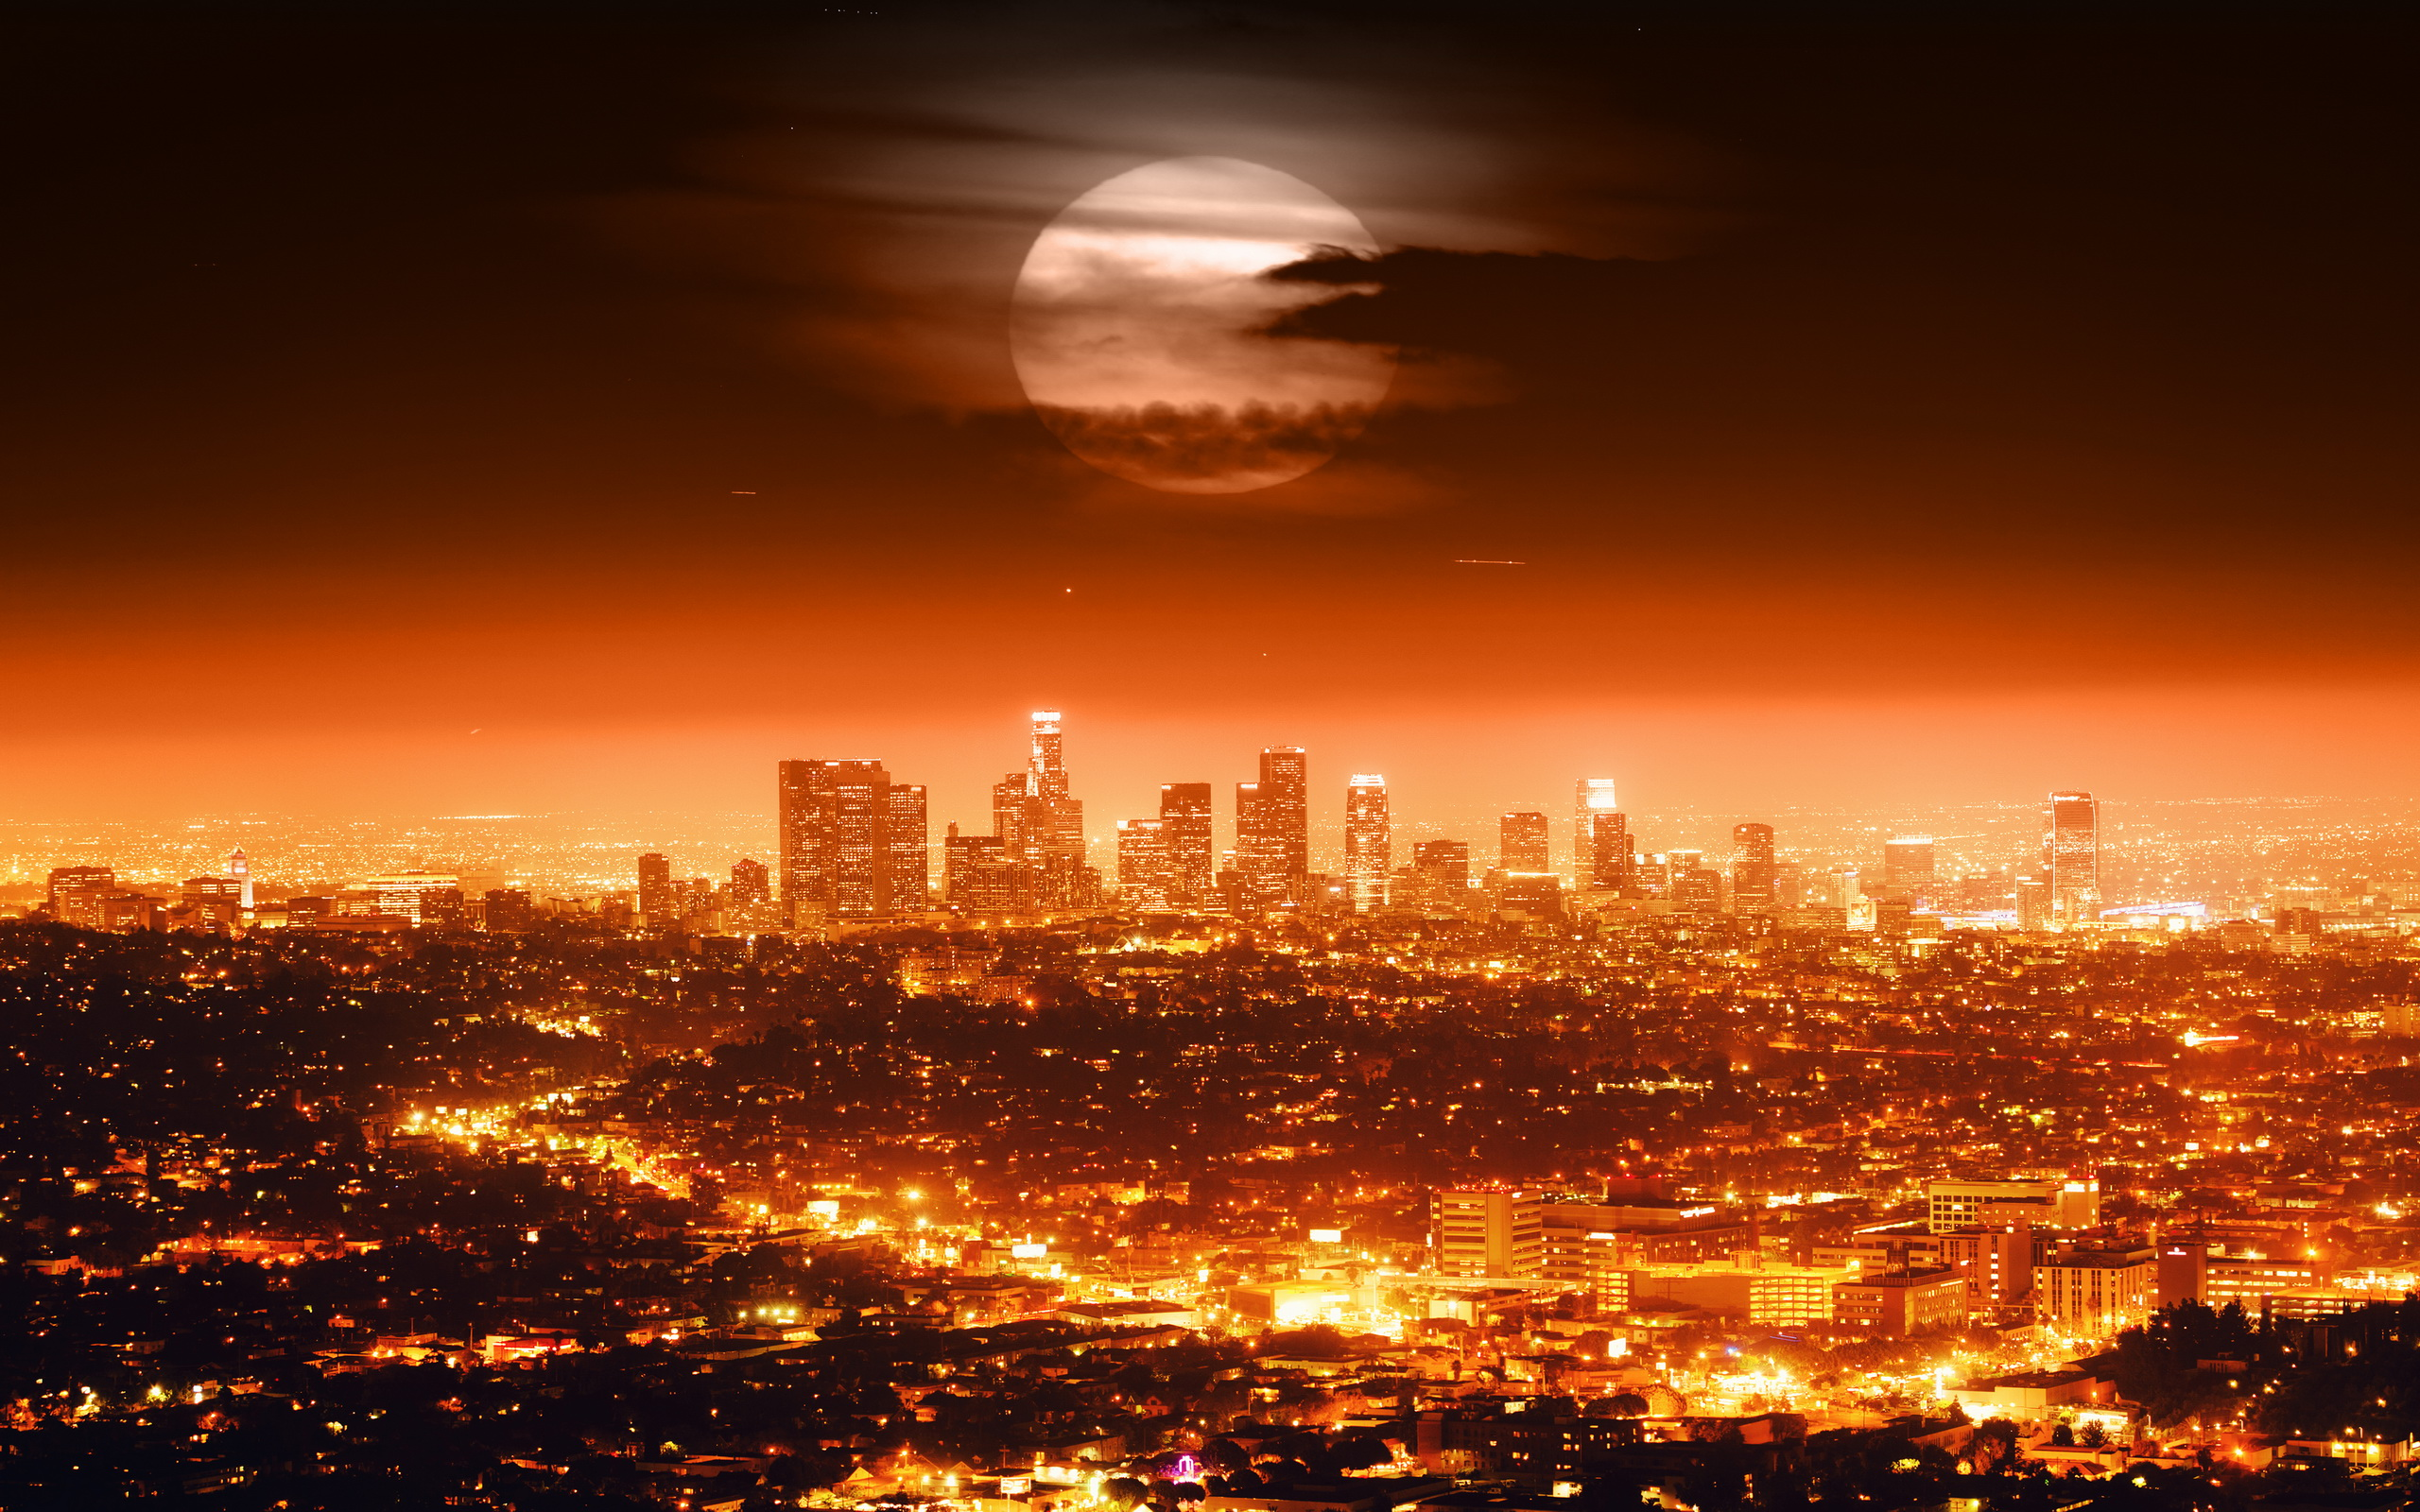 35 los angeles hd wallpapers | background images - wallpaper abyss